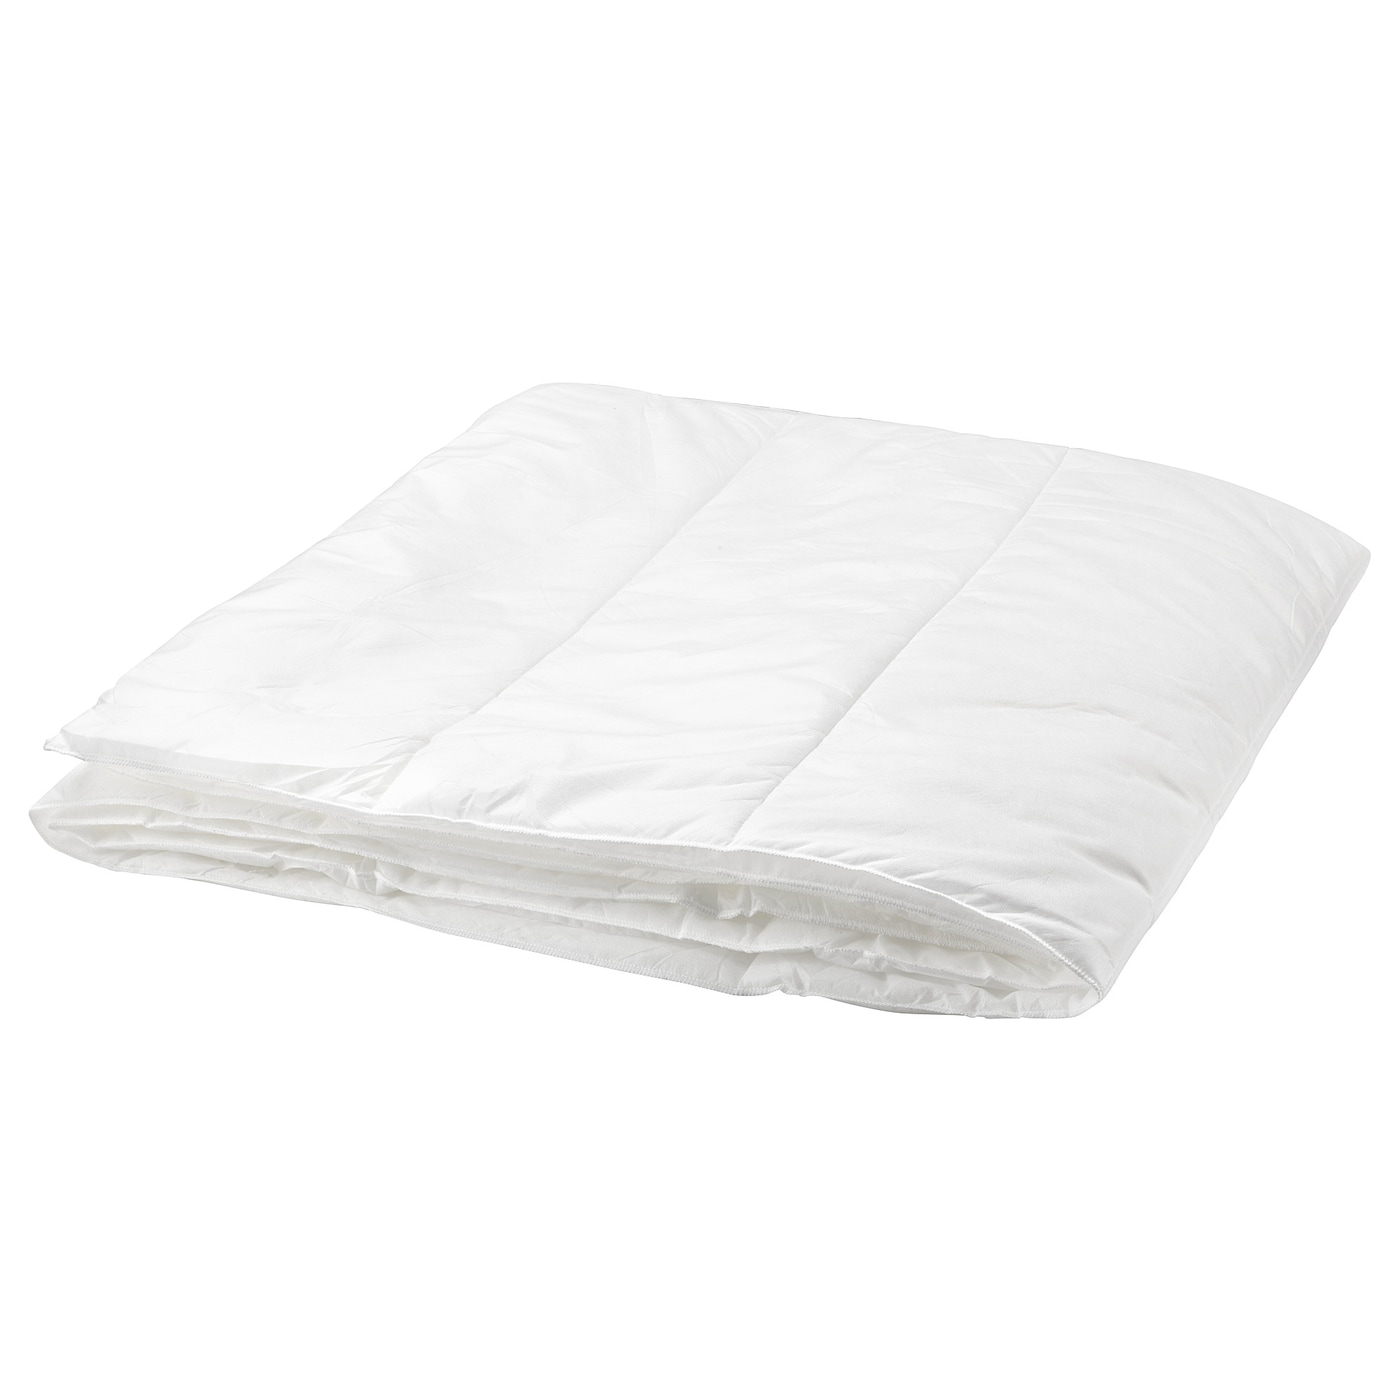 IKEA MYSKGRÄS duvet, 4 TOG A cool quilt with polypropylene fabric and polyester filling.